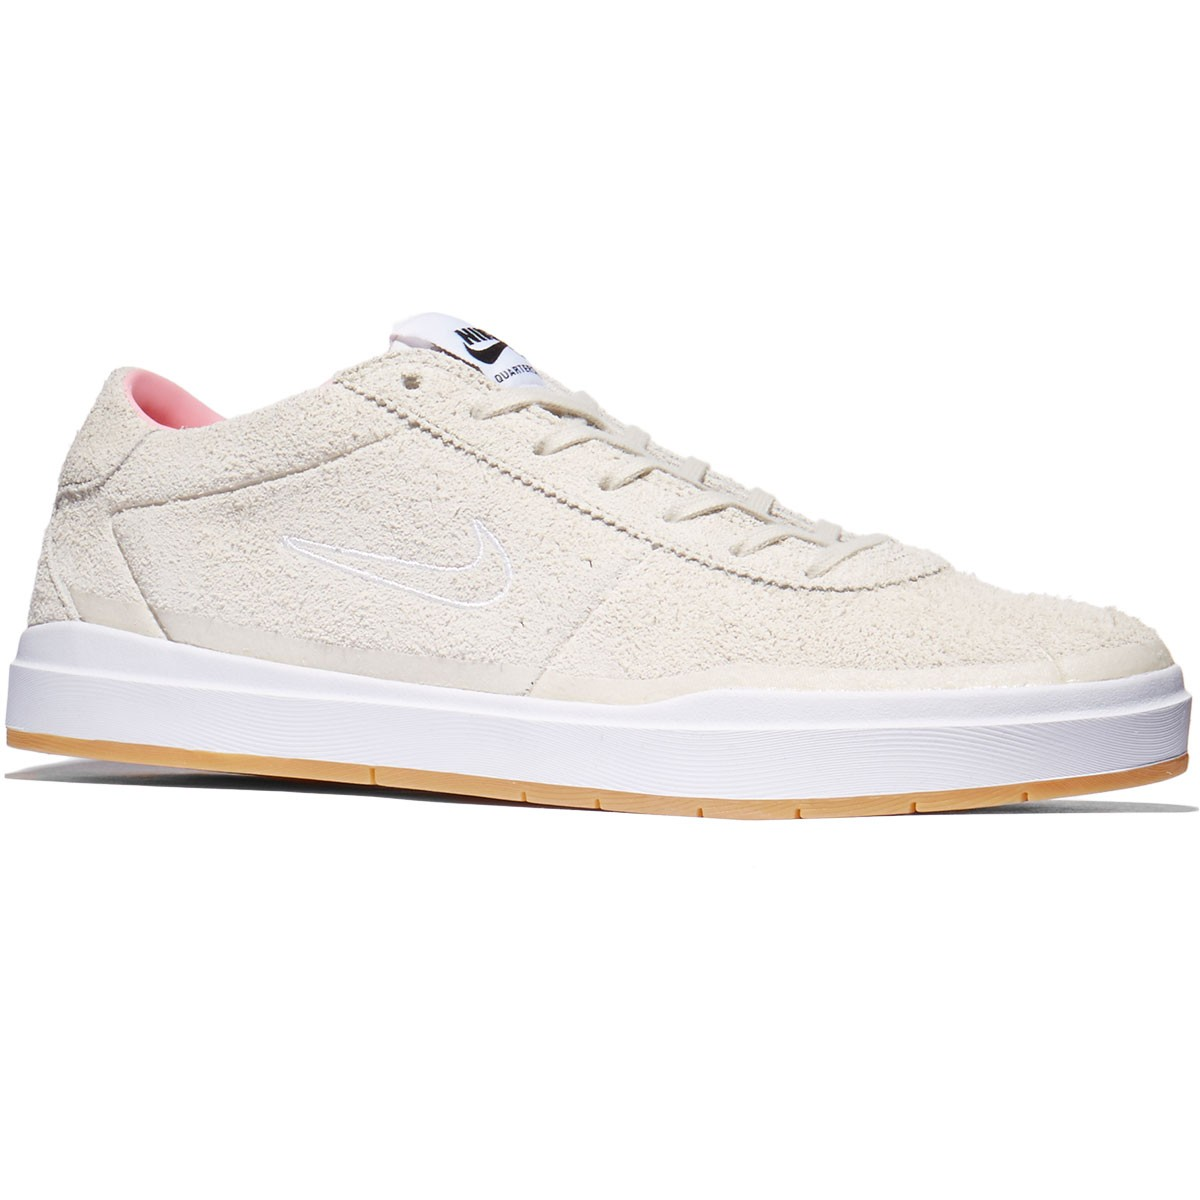 pretty nice bd2fd 8dc3d Nike SB X Quartersnacks Bruin Hyperfeel QS Shoes - Birch White Space Pink